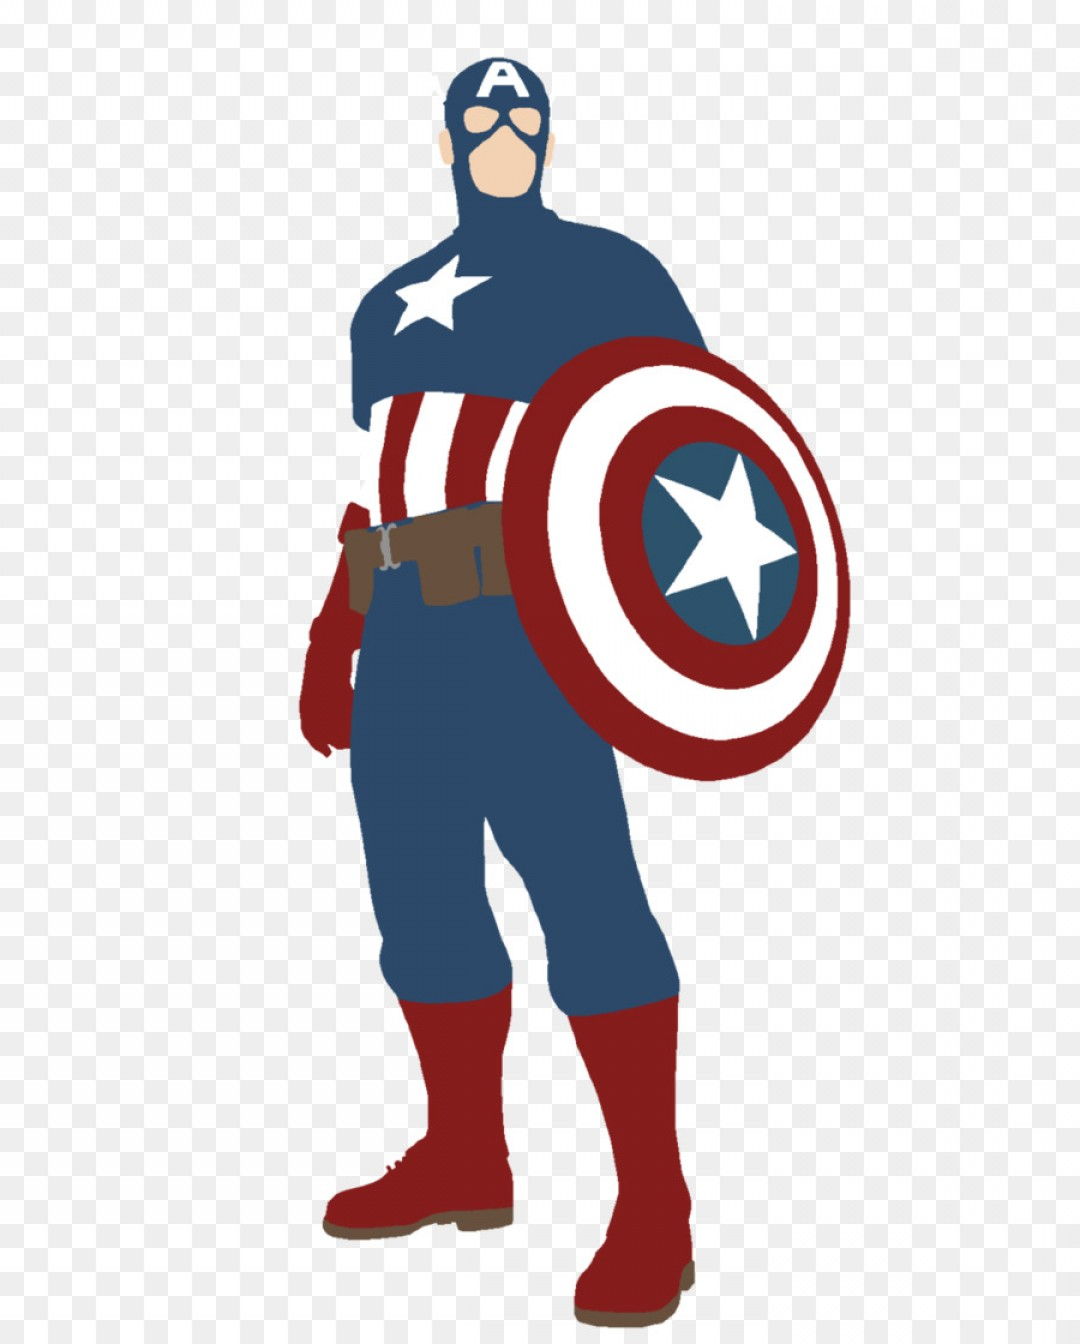 Captain america iron man clipart image Png Captain America Iron Man Spider Man Superhero Silh | SOIDERGI image